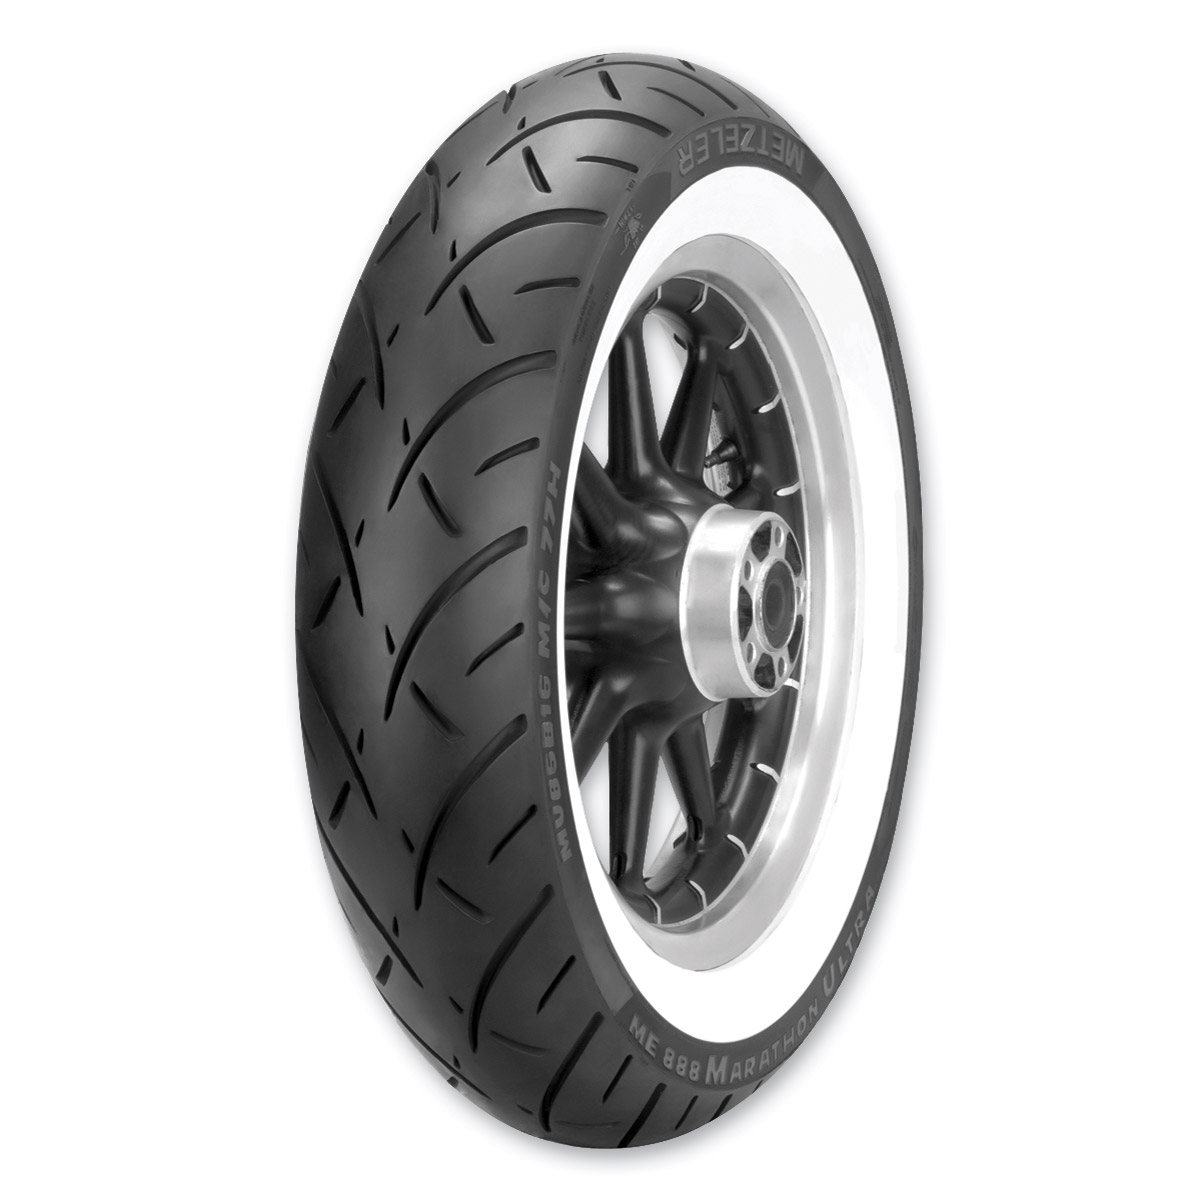 Metzeler ME888 MU85B16 Wide Whitewall Rear Tire